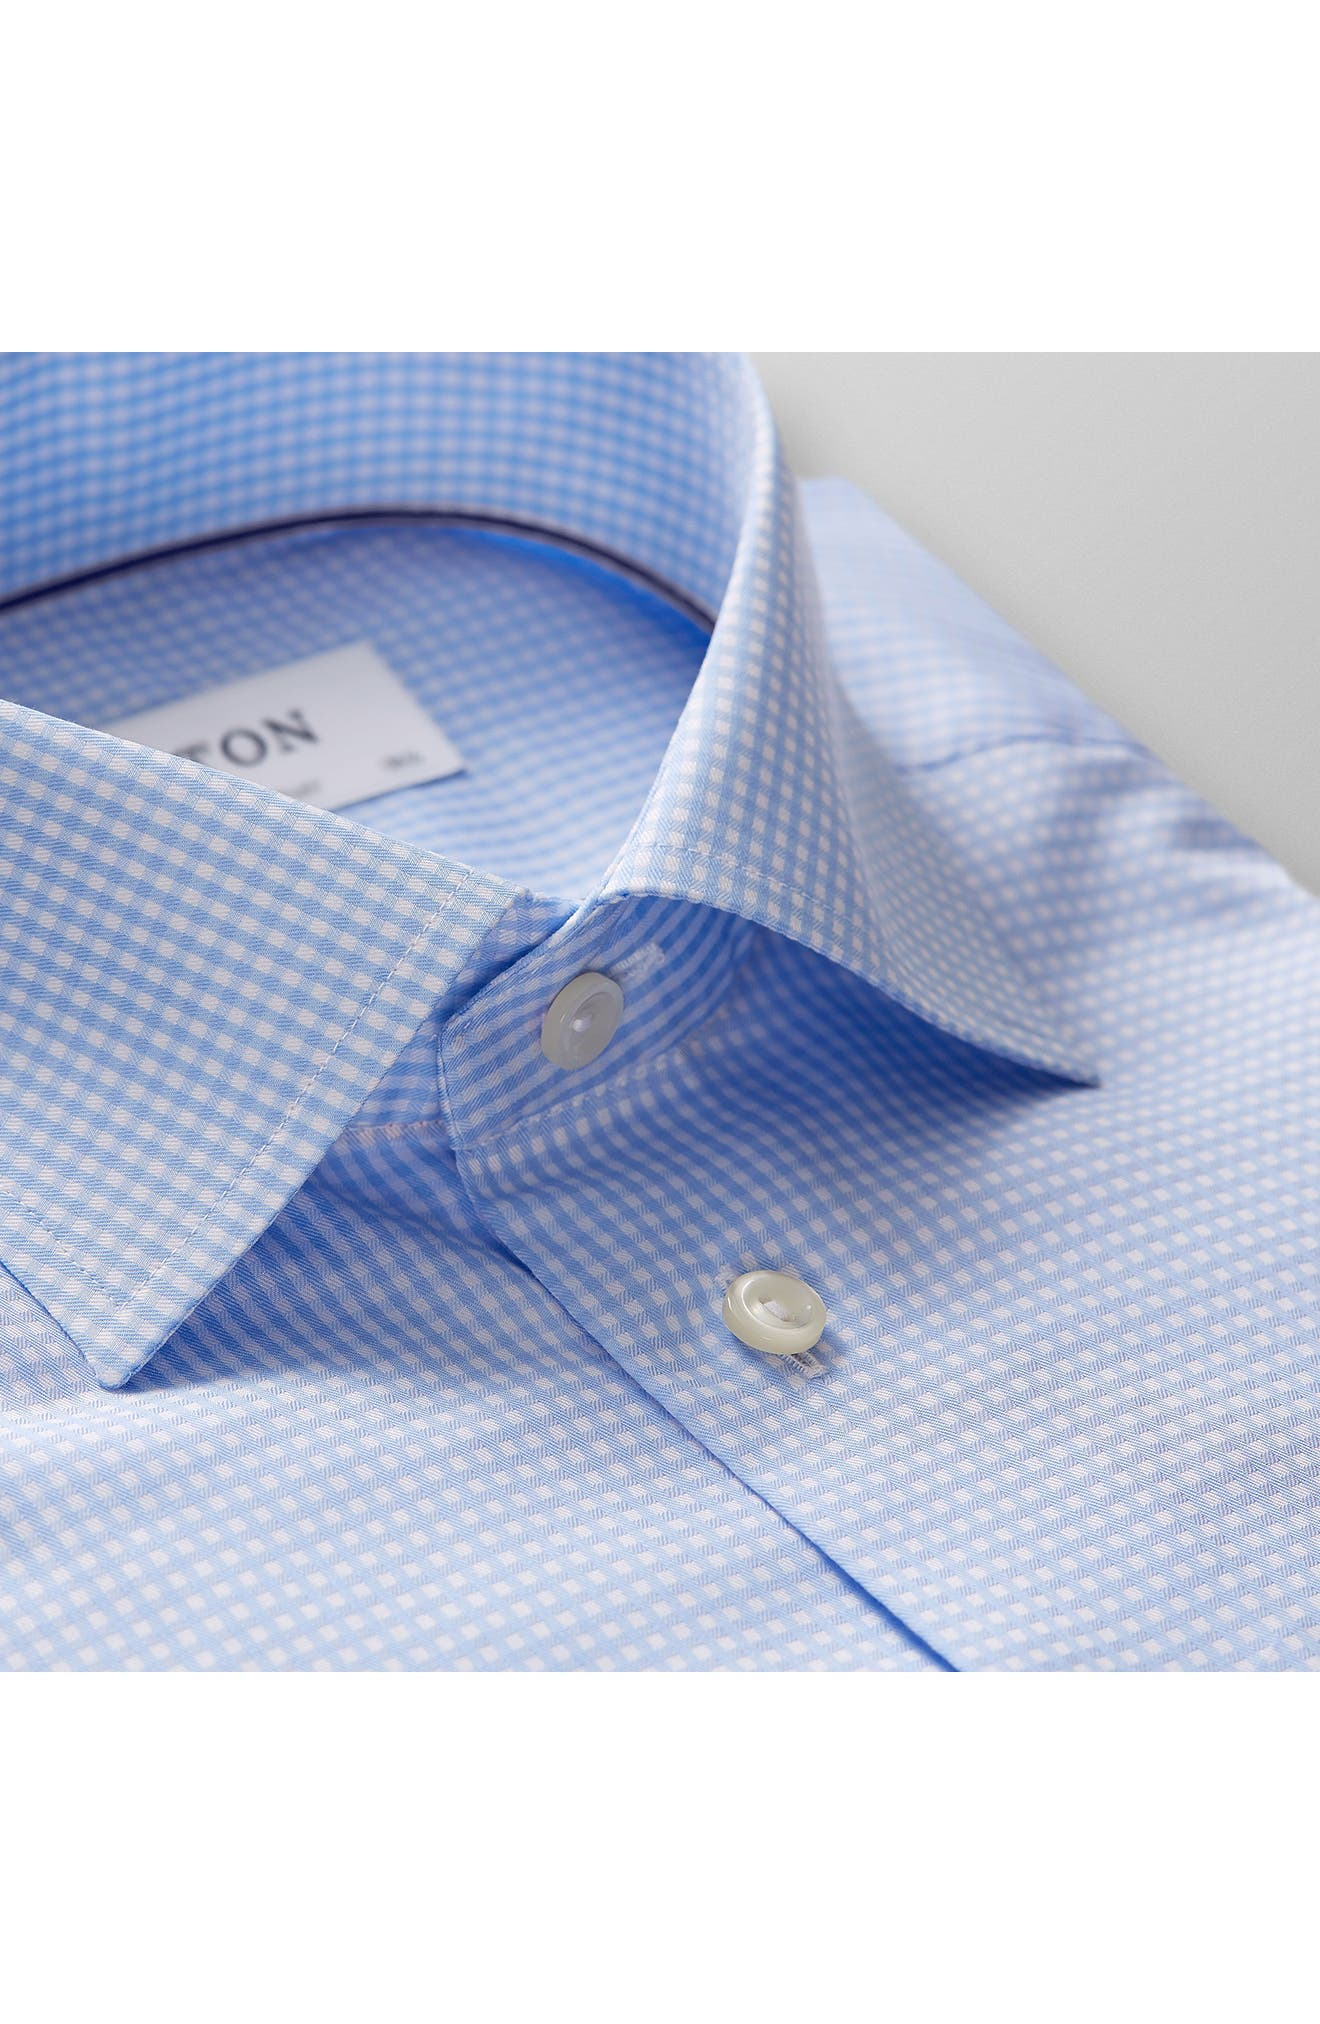 Contemporary Fit Check Dress Shirt,                             Alternate thumbnail 4, color,                             BLUE